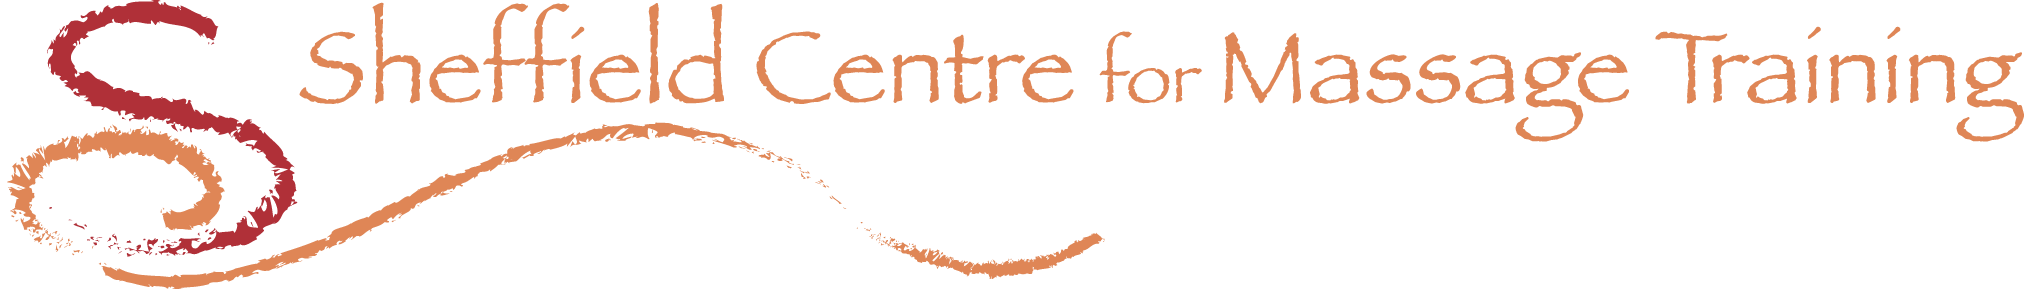 Sheffield Centre for Massage Training